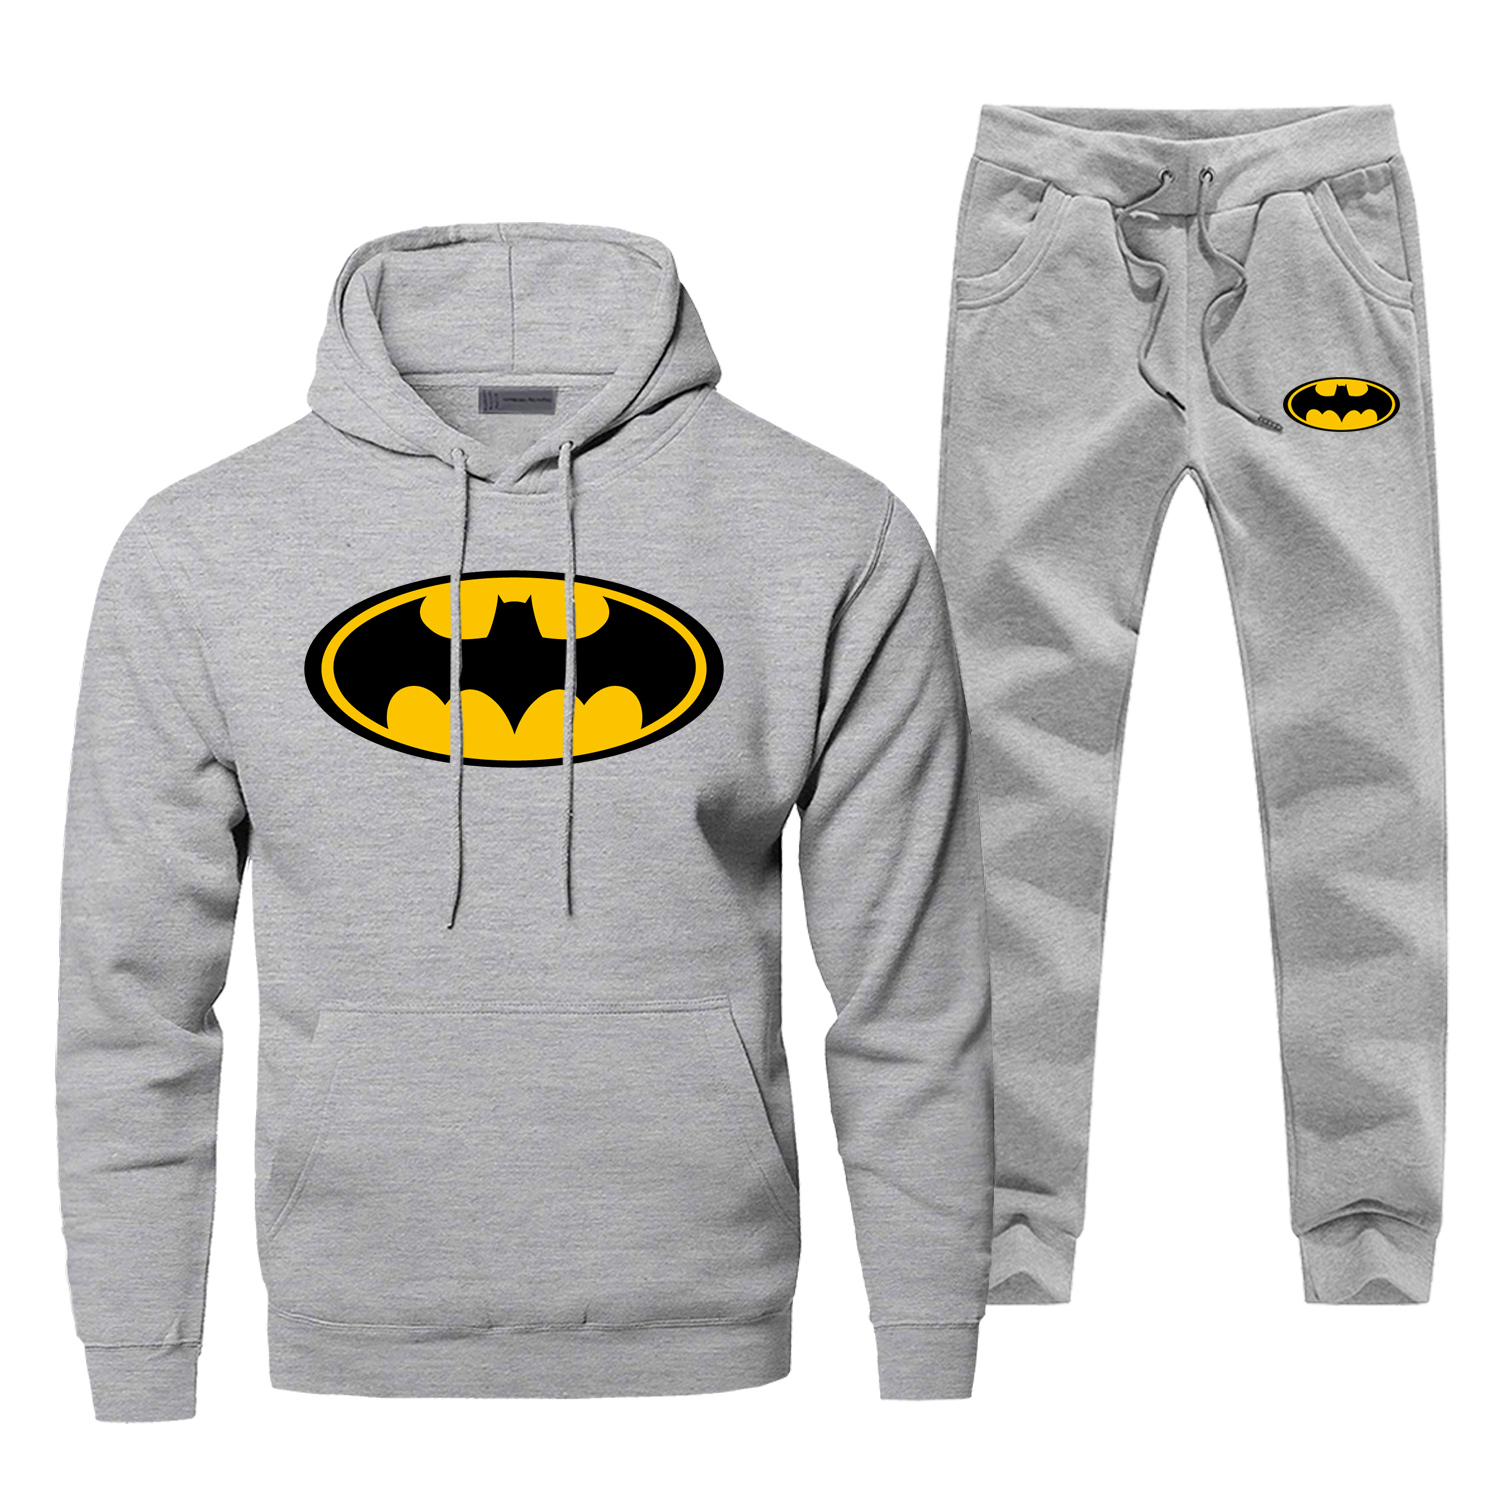 Batman Mens Hoodies Sets Two Piece Pant Totoro Hoodie Sweatshirt Sweatpants Japan Anime Streetwear Sportswear Male Sweatshirts